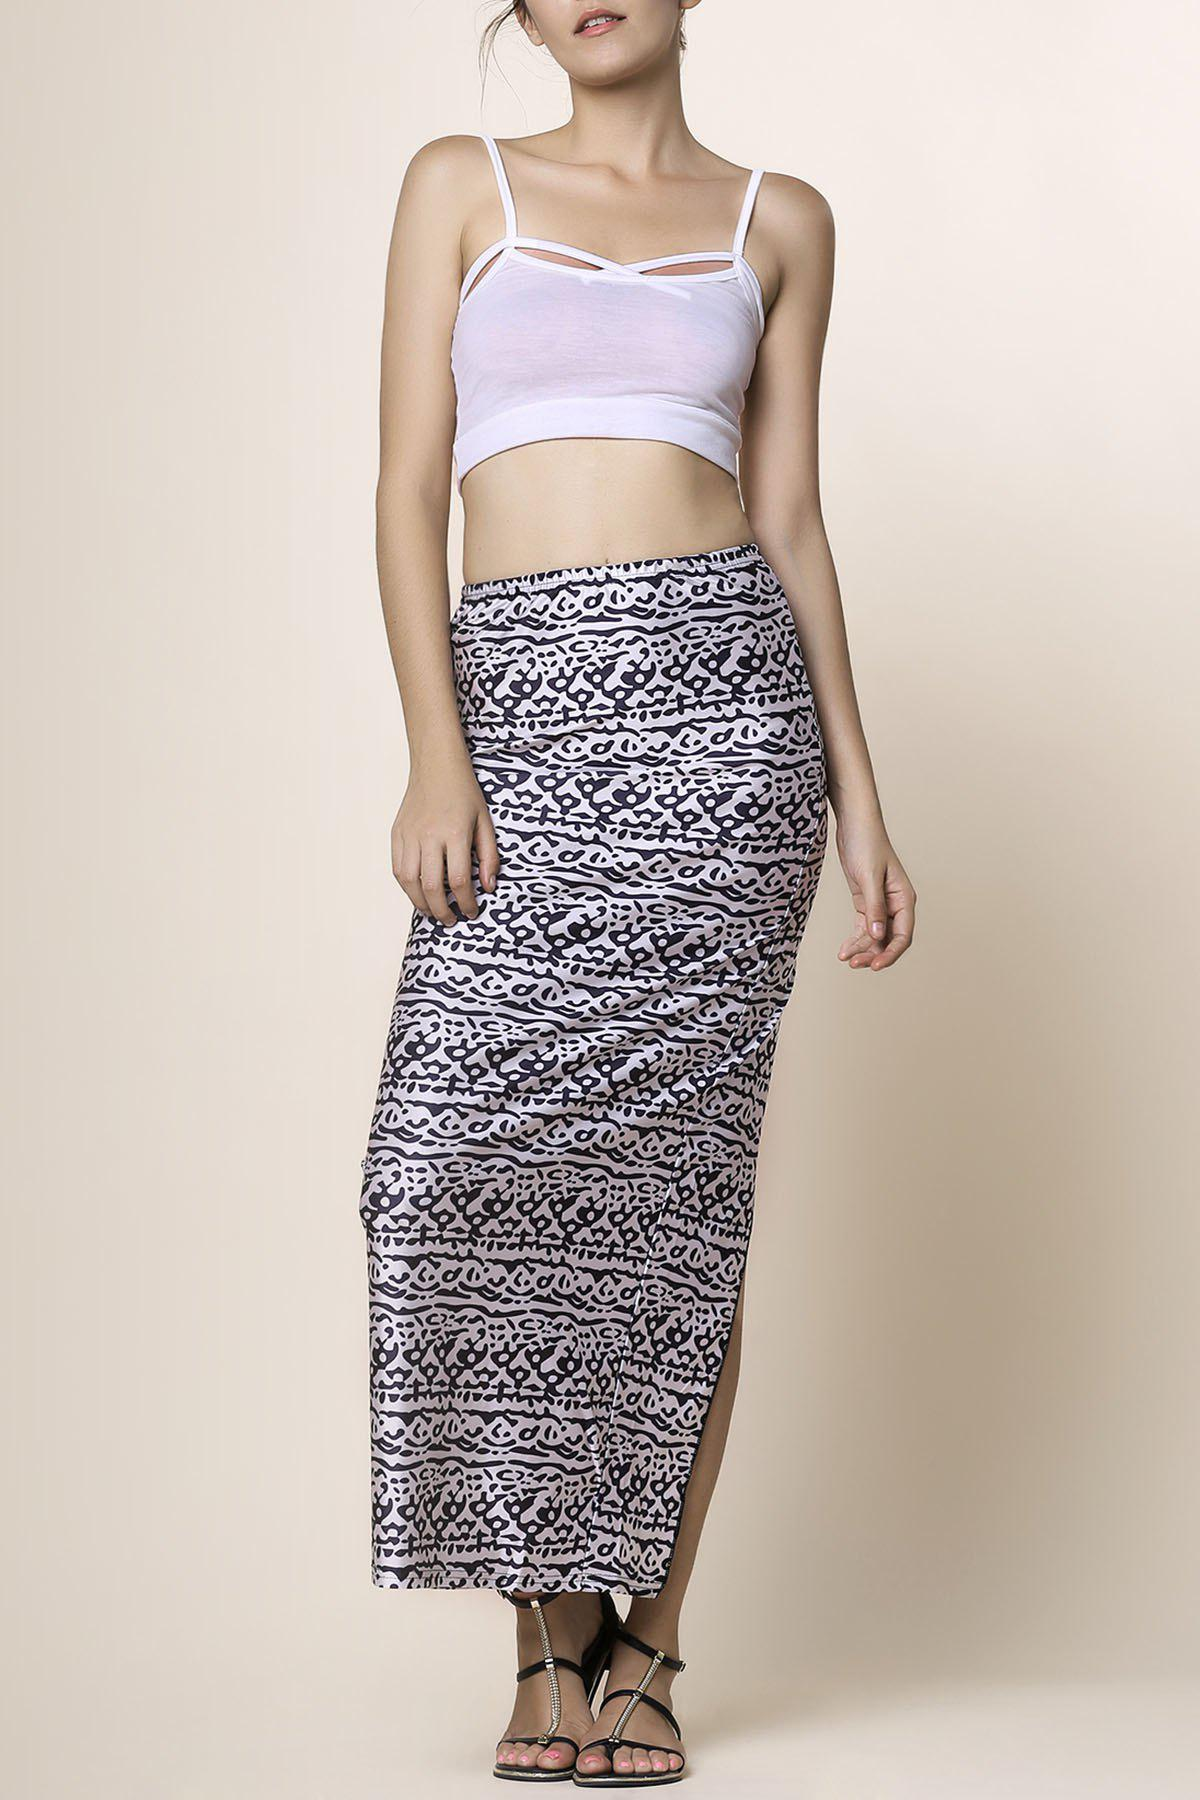 Cami Top and High Waisted Printed Skirt Чёрный S